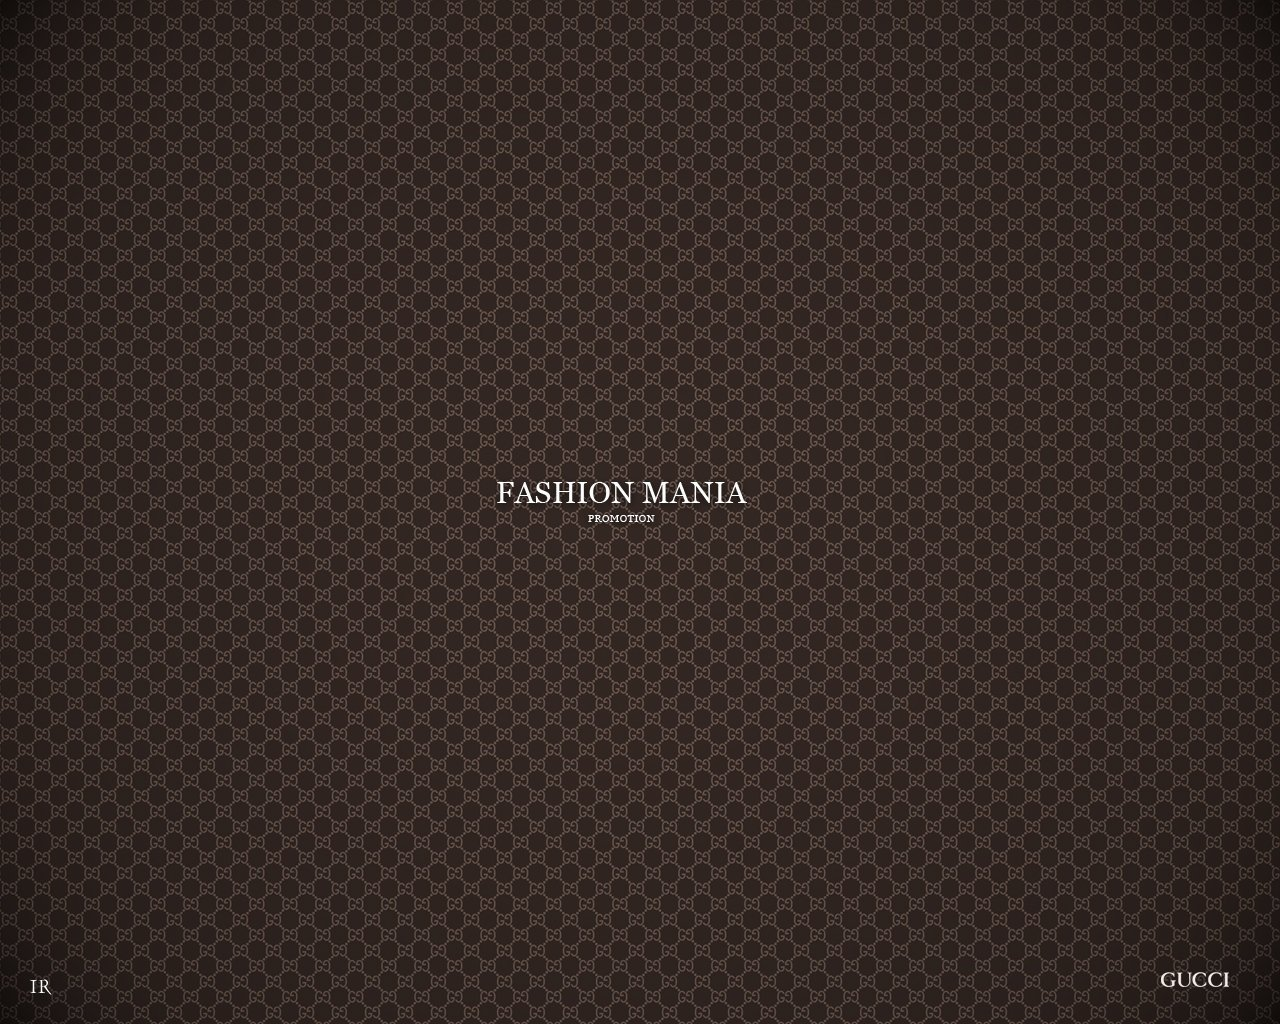 Search Gucci Search Iphone 5 Wallpapers And Iphone 4 Wallpapers Auto 1280x1024